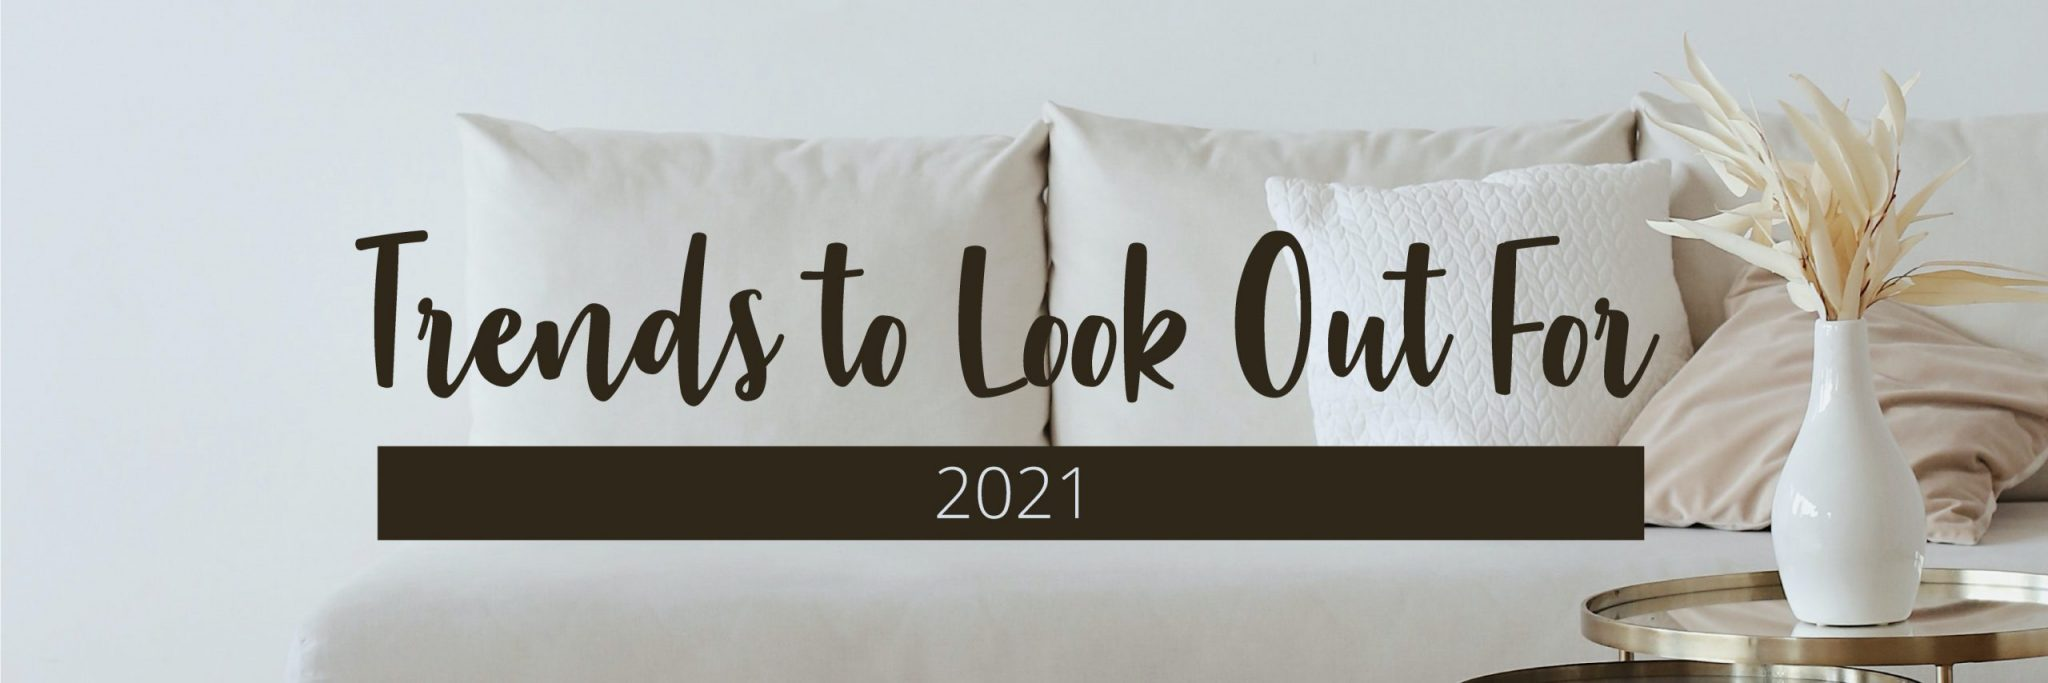 Interior Design Trends for 2021 that we have our Eye on